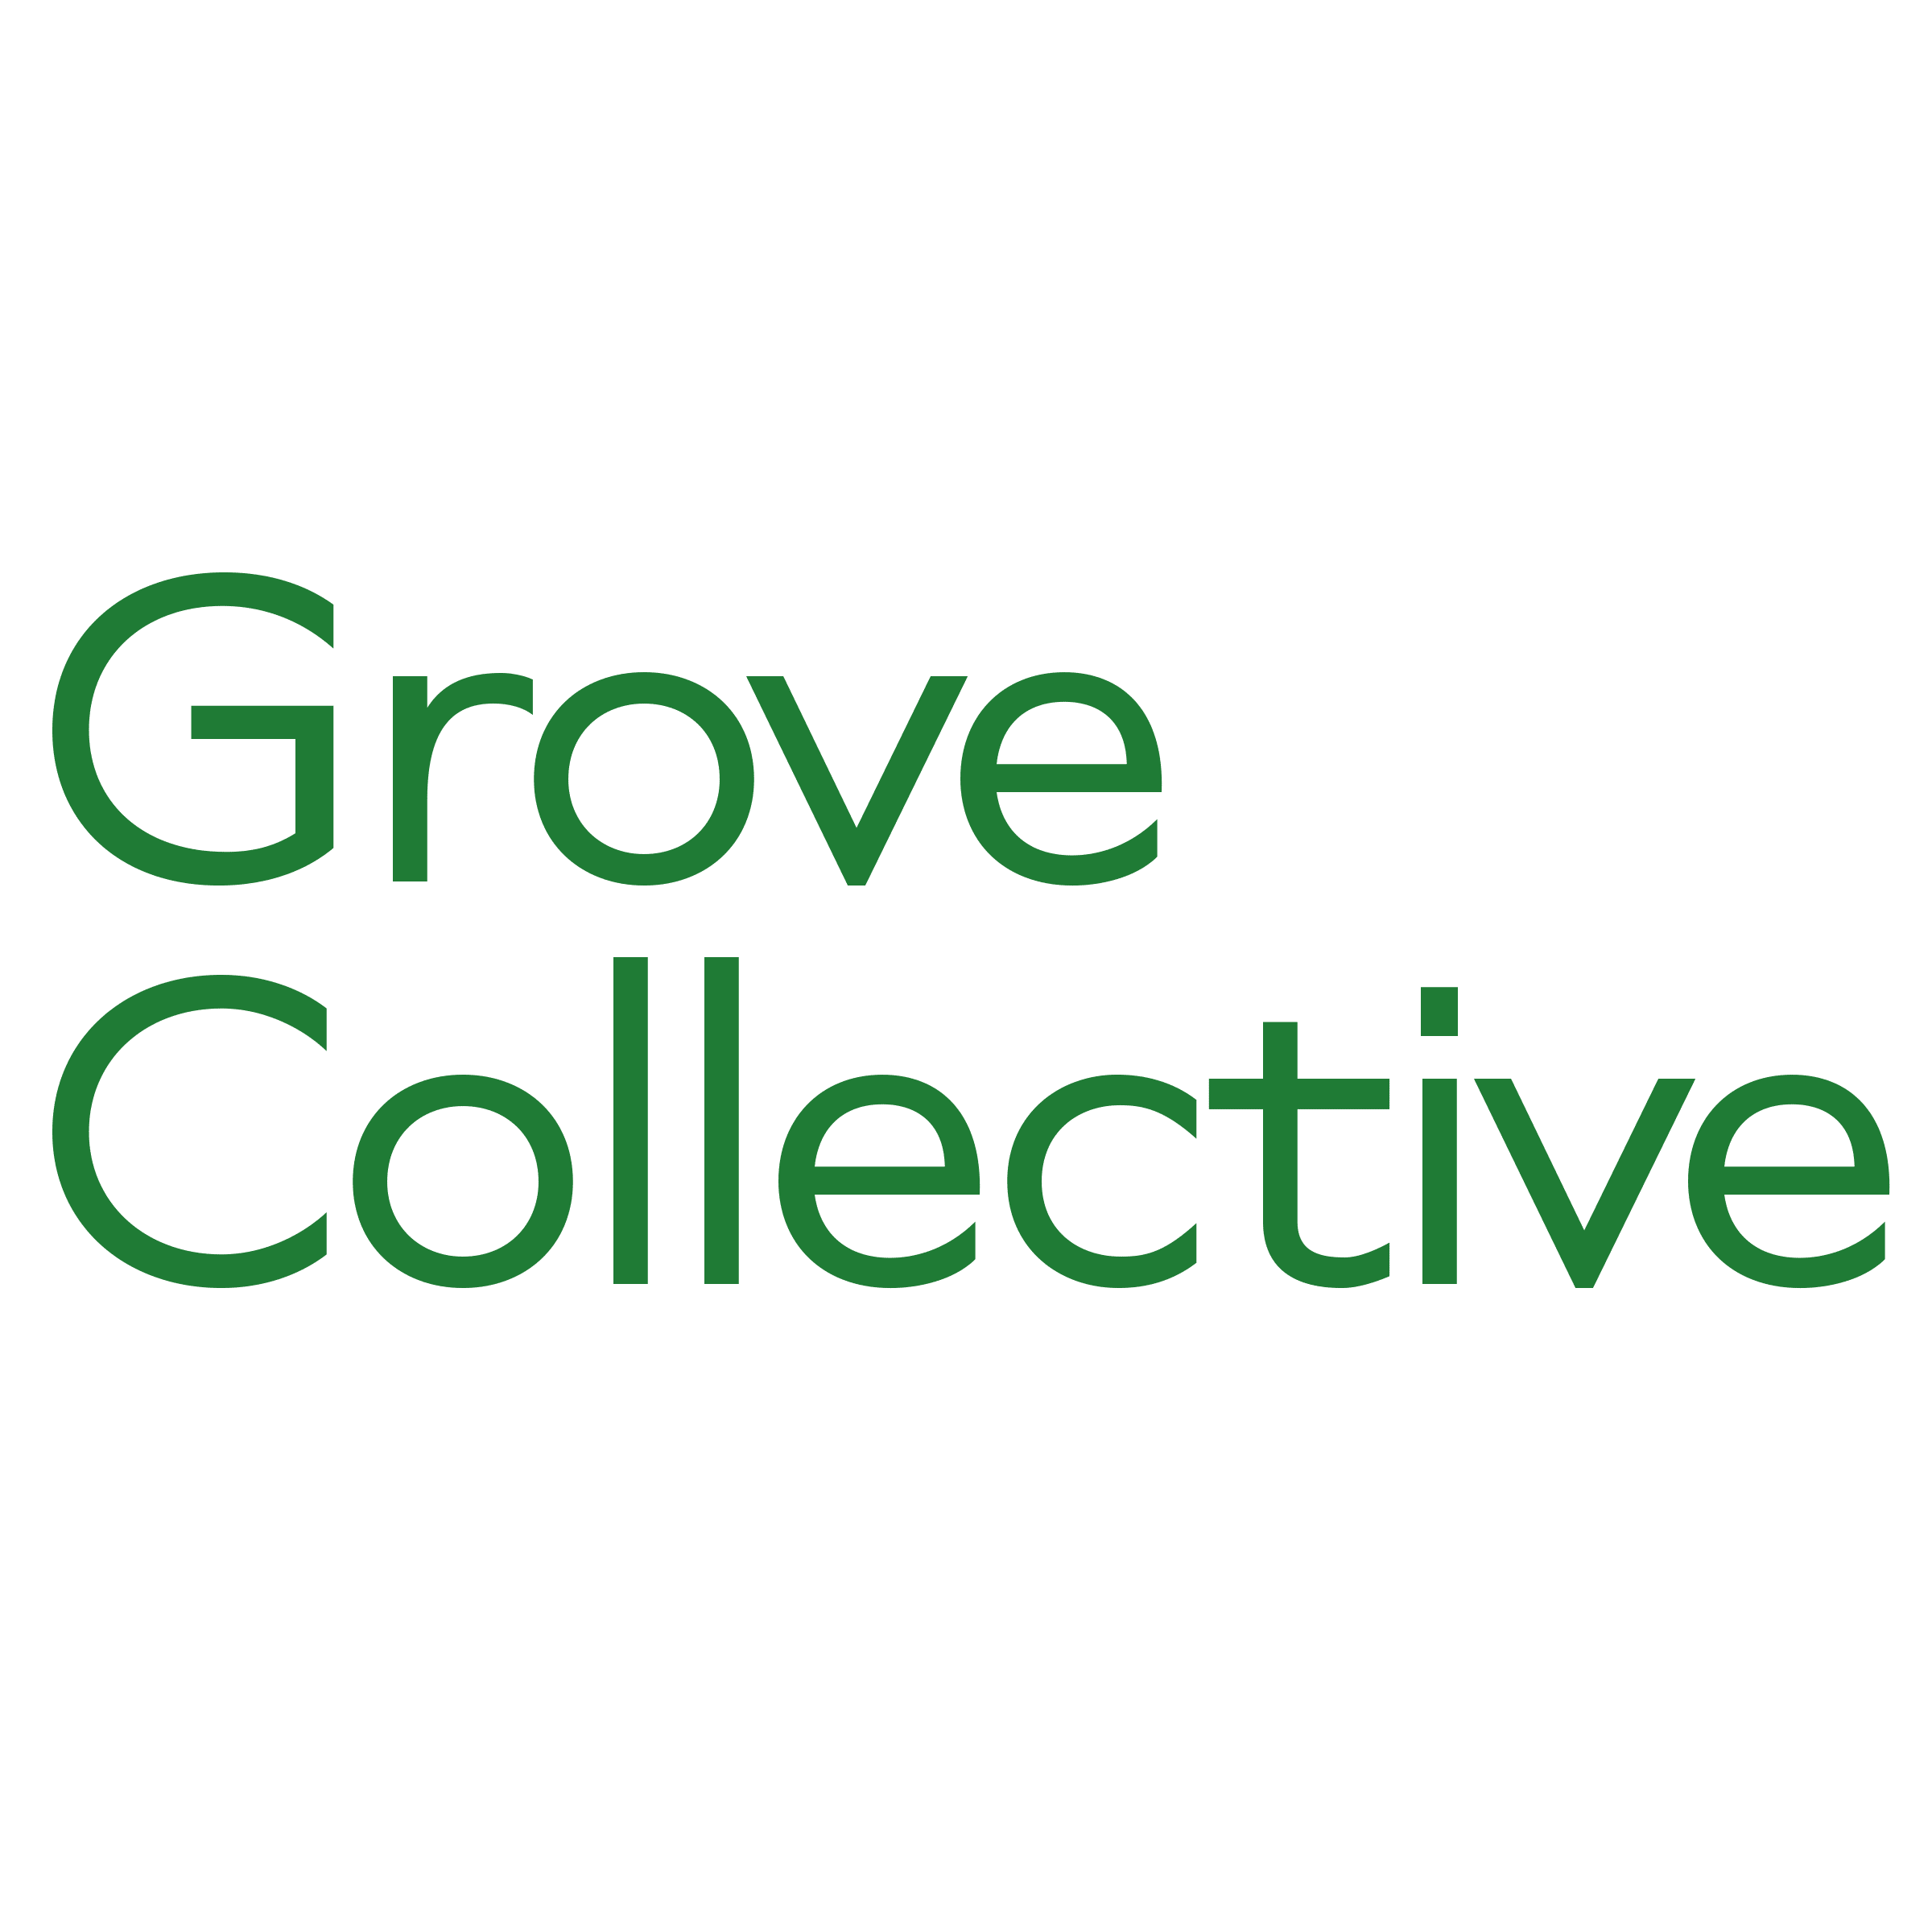 Grove Collective company logo